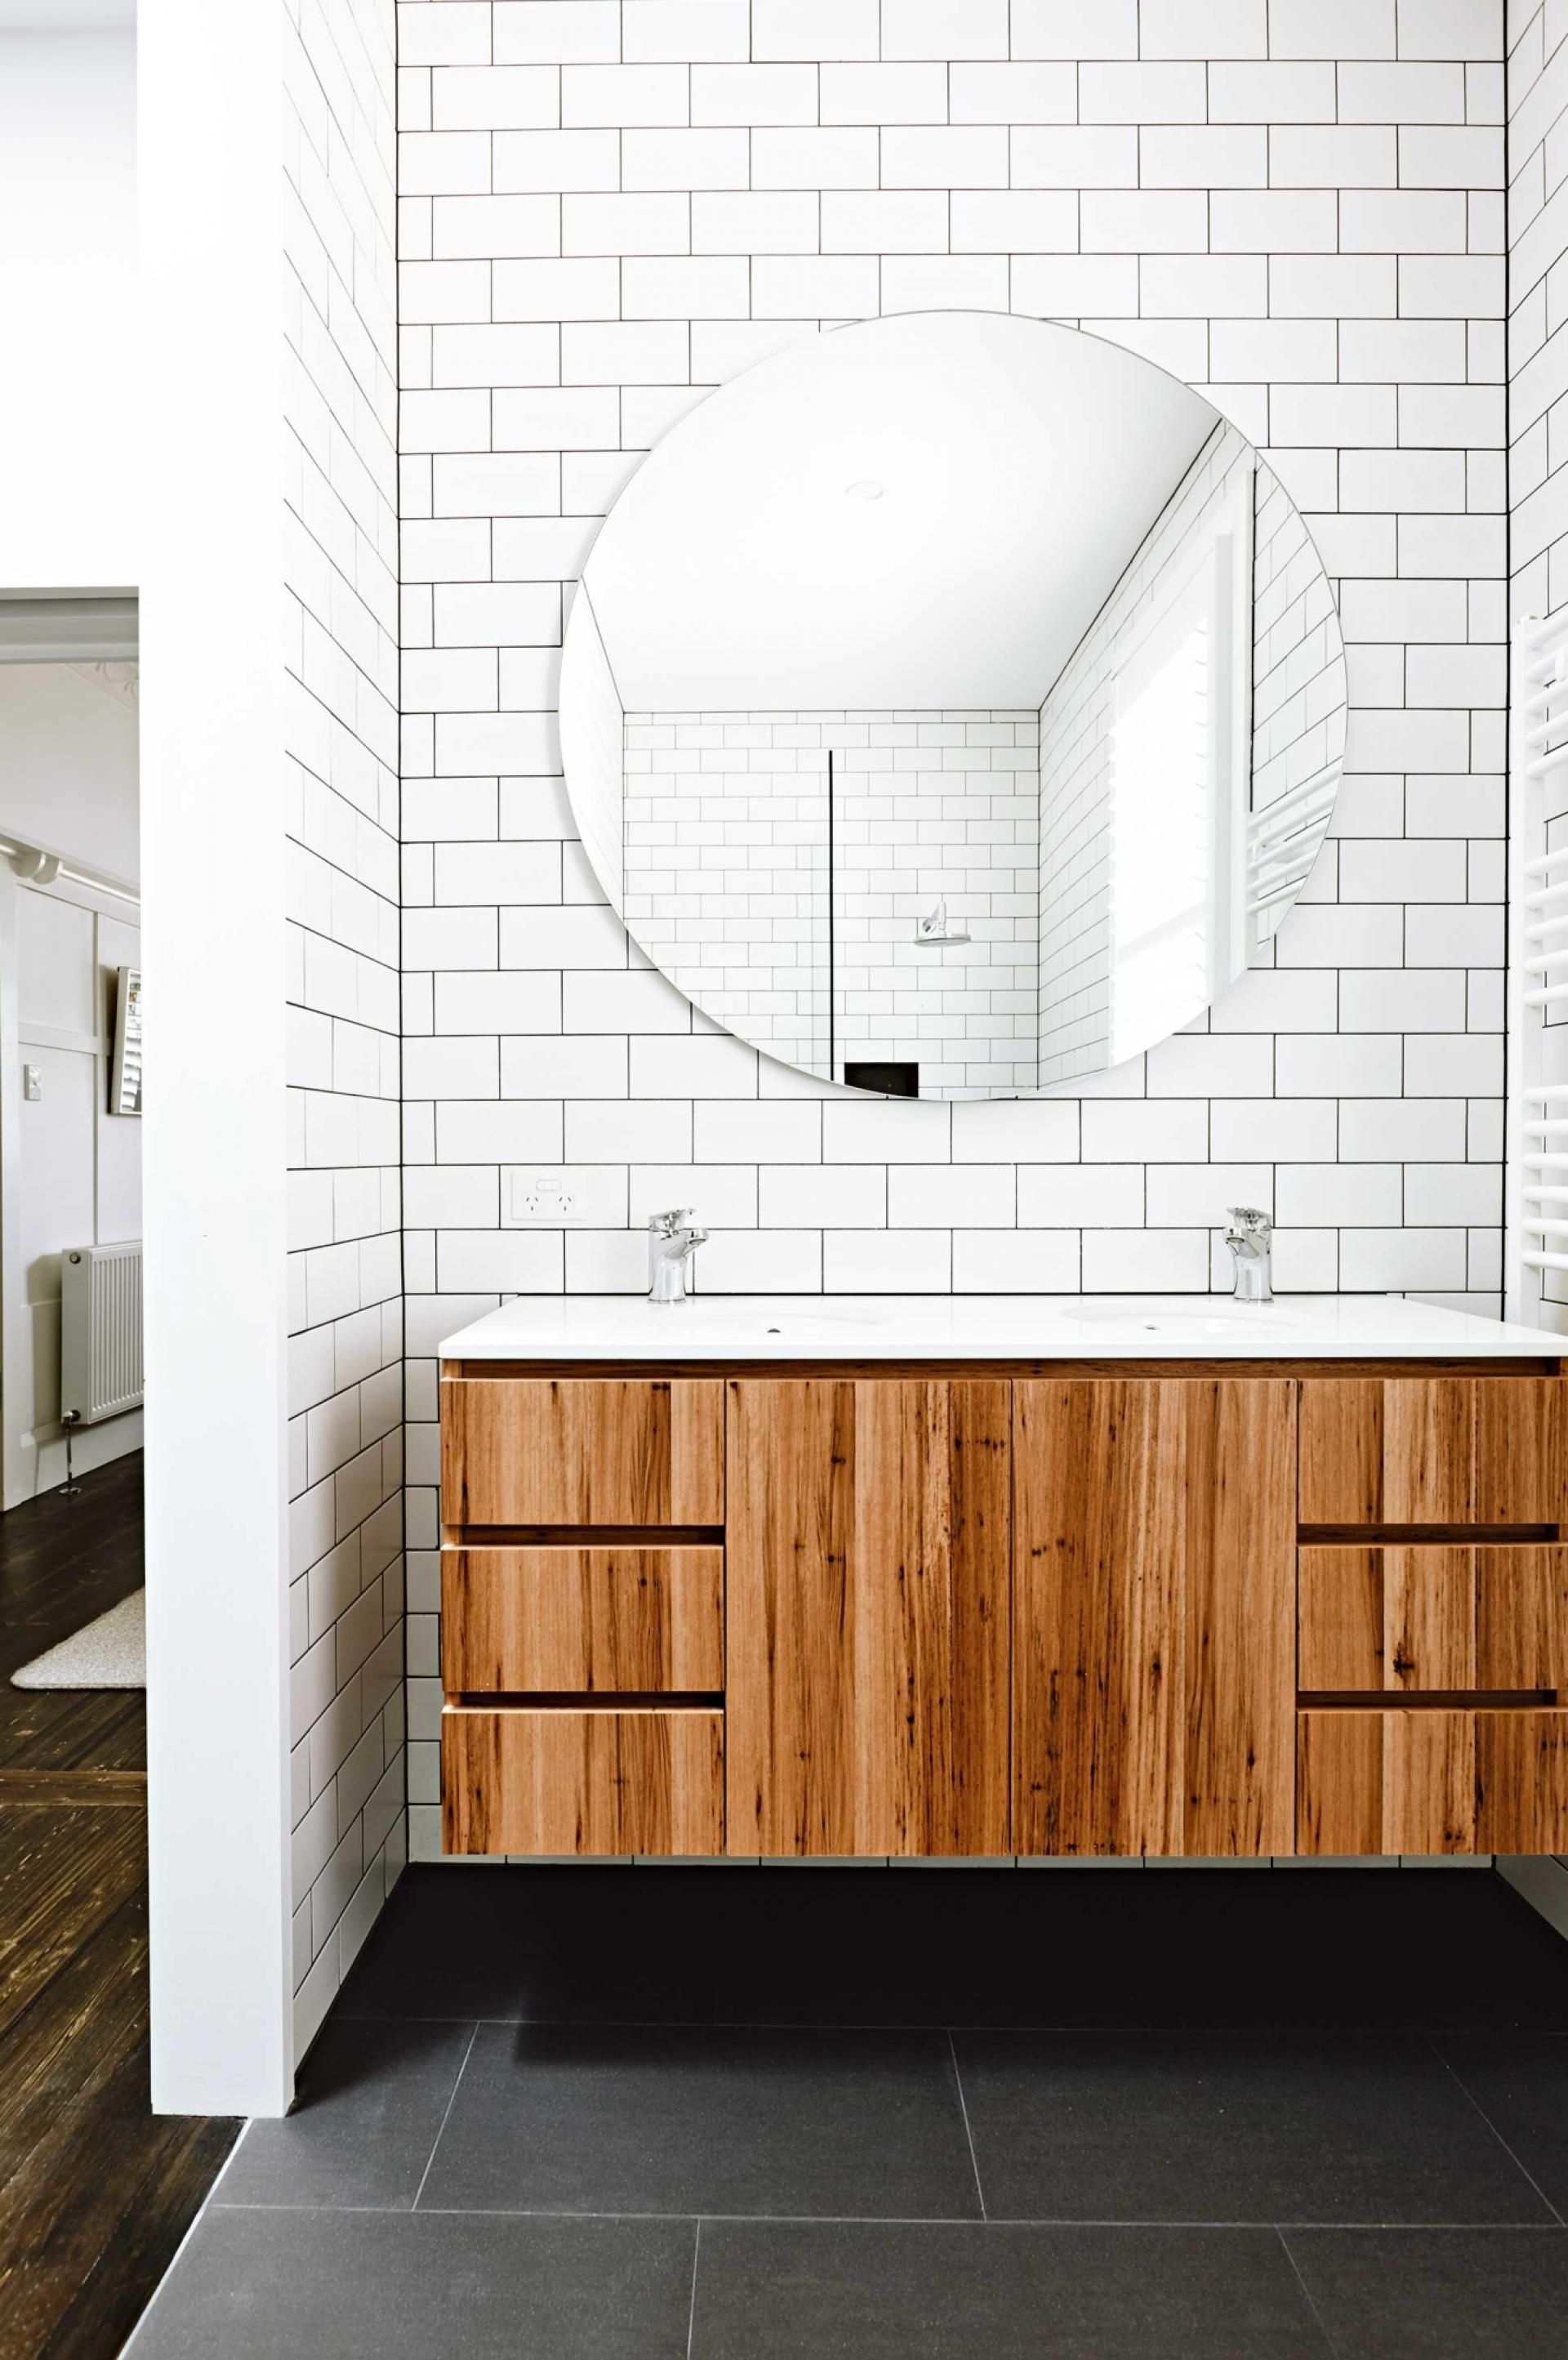 8 design lessons from a family-friendly bungalow. From the April 2016 issue of Inside Out magazine. Photography by Derek Swalwell. Available from newsagents, Zinio,www.zinio.com, Google Play, https://play.google.com/store/newsstand/details/Inside_Out?id=CAowu8qZAQ, Apple's Newsstand, https://itunes.apple.com/au/app/inside-out/id604734331?mt=8&ign-mpt=uo%3D4, and Nook.